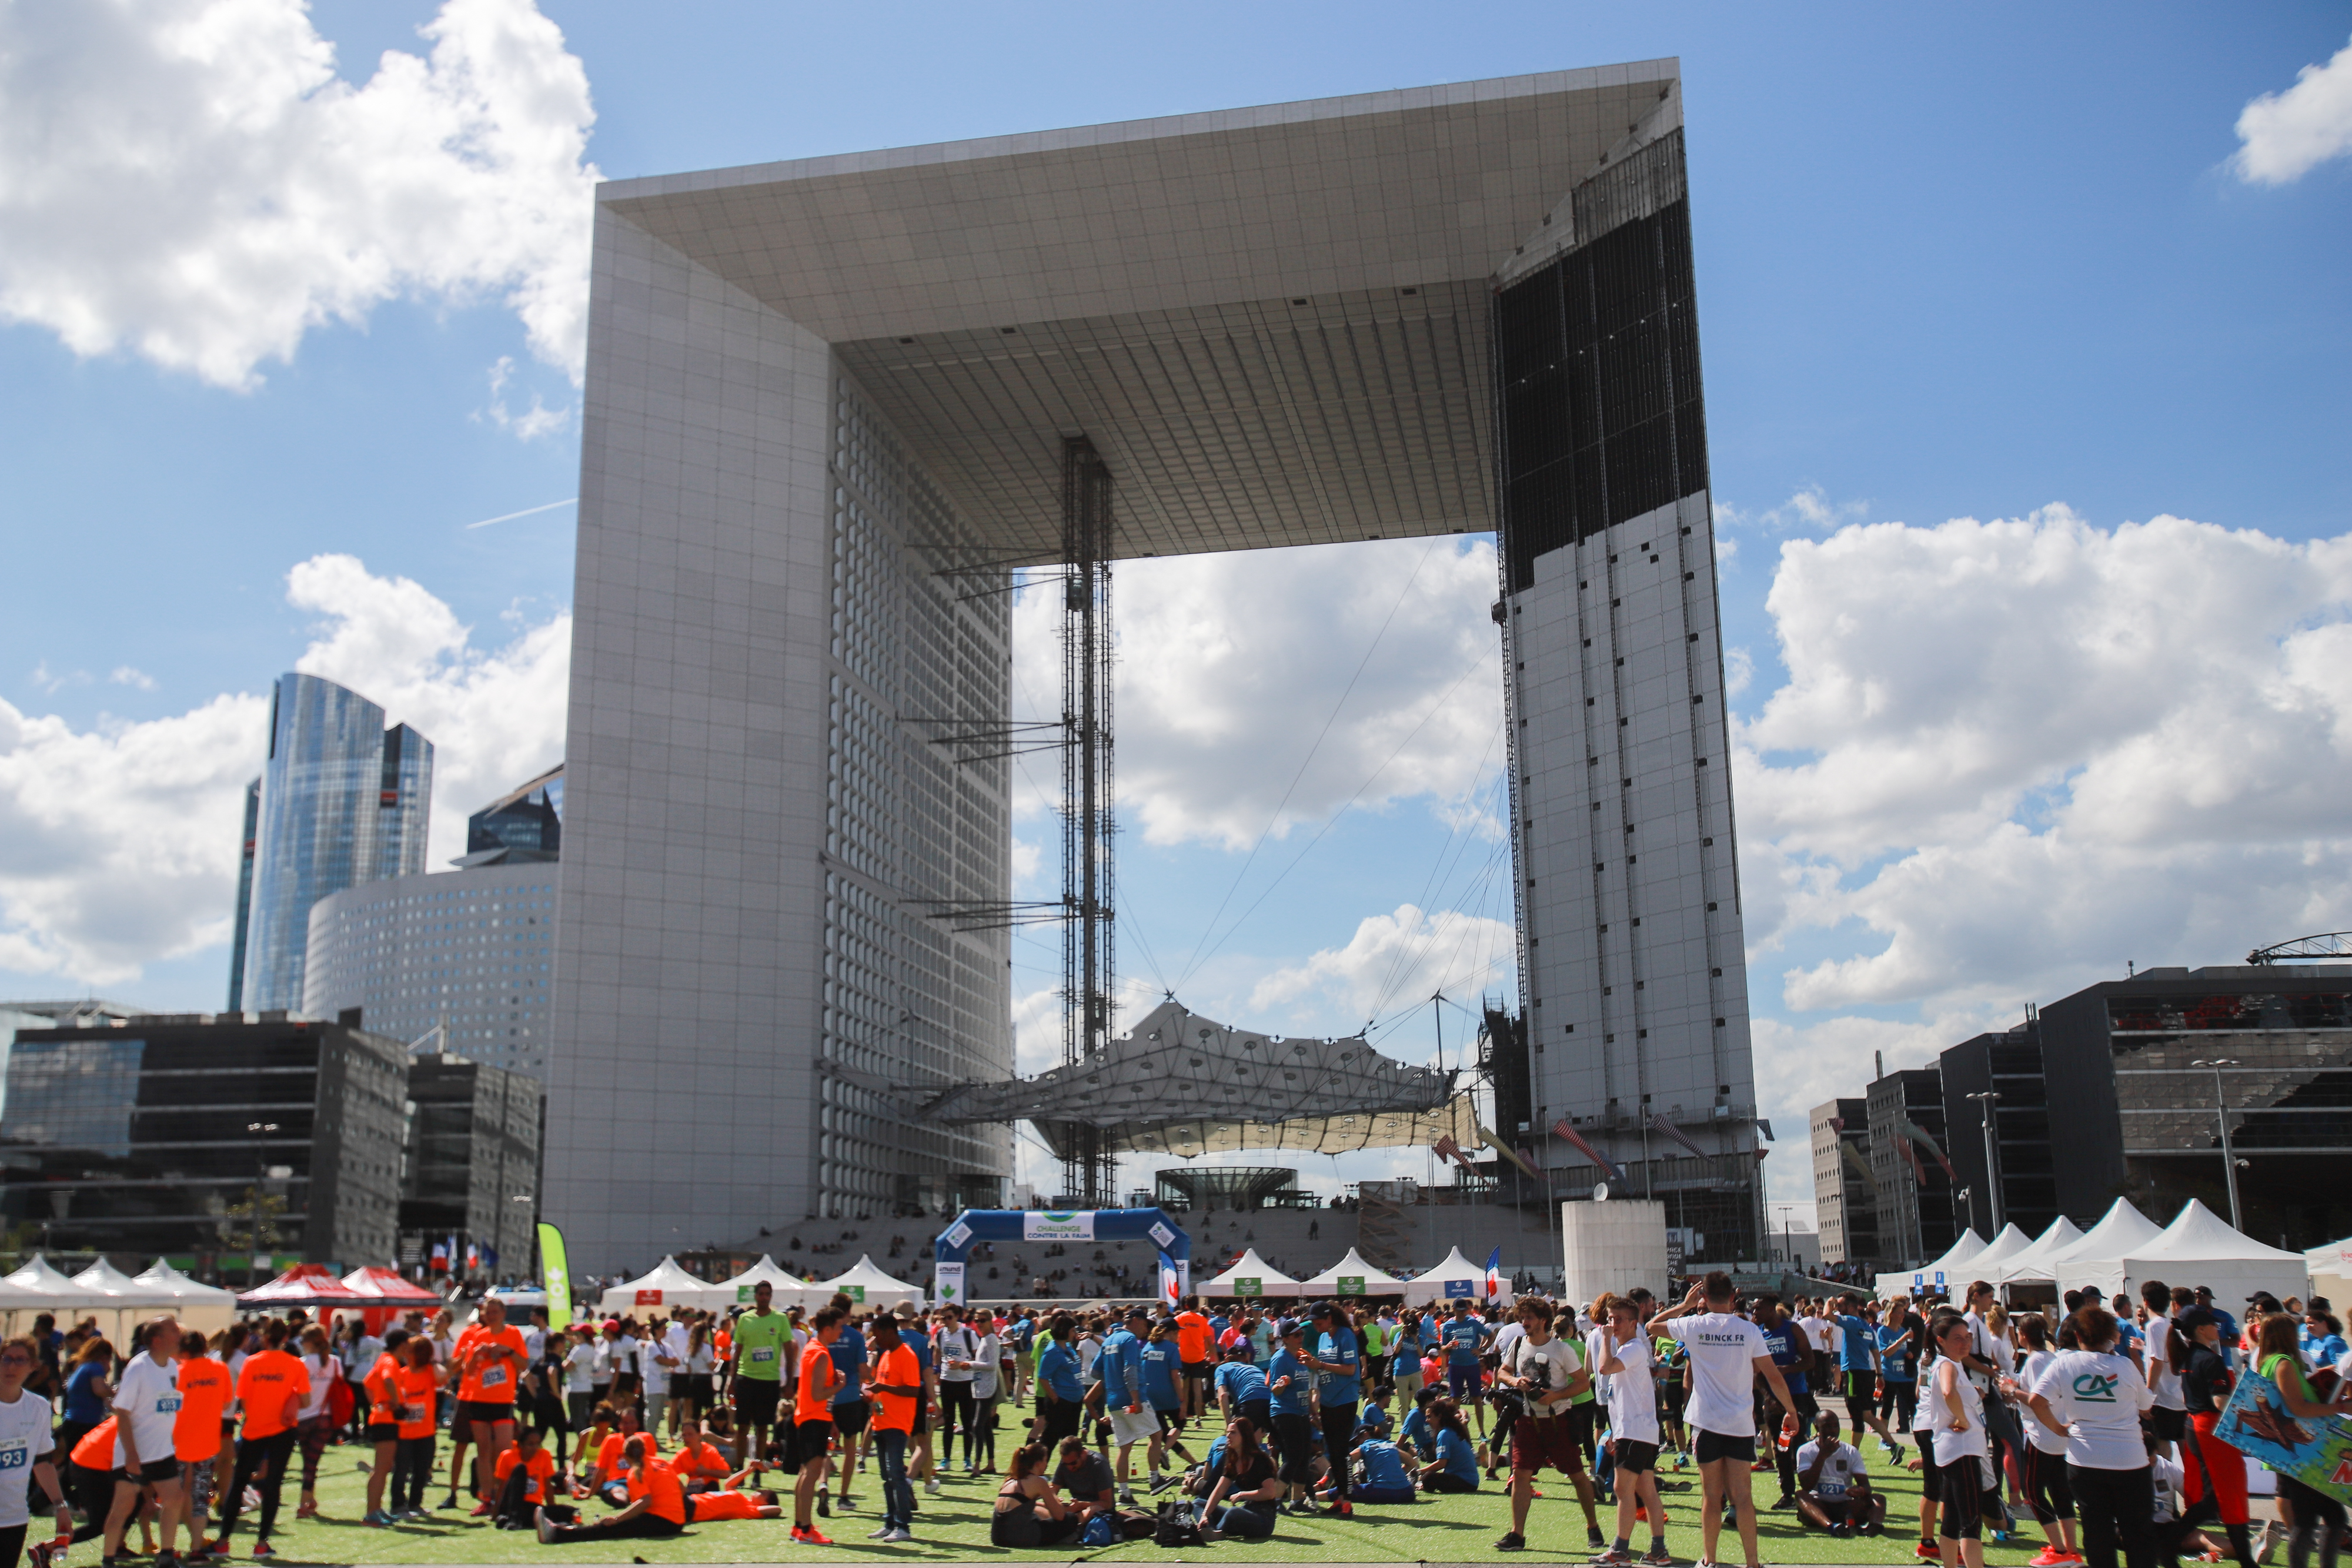 Paris La Défense 2018